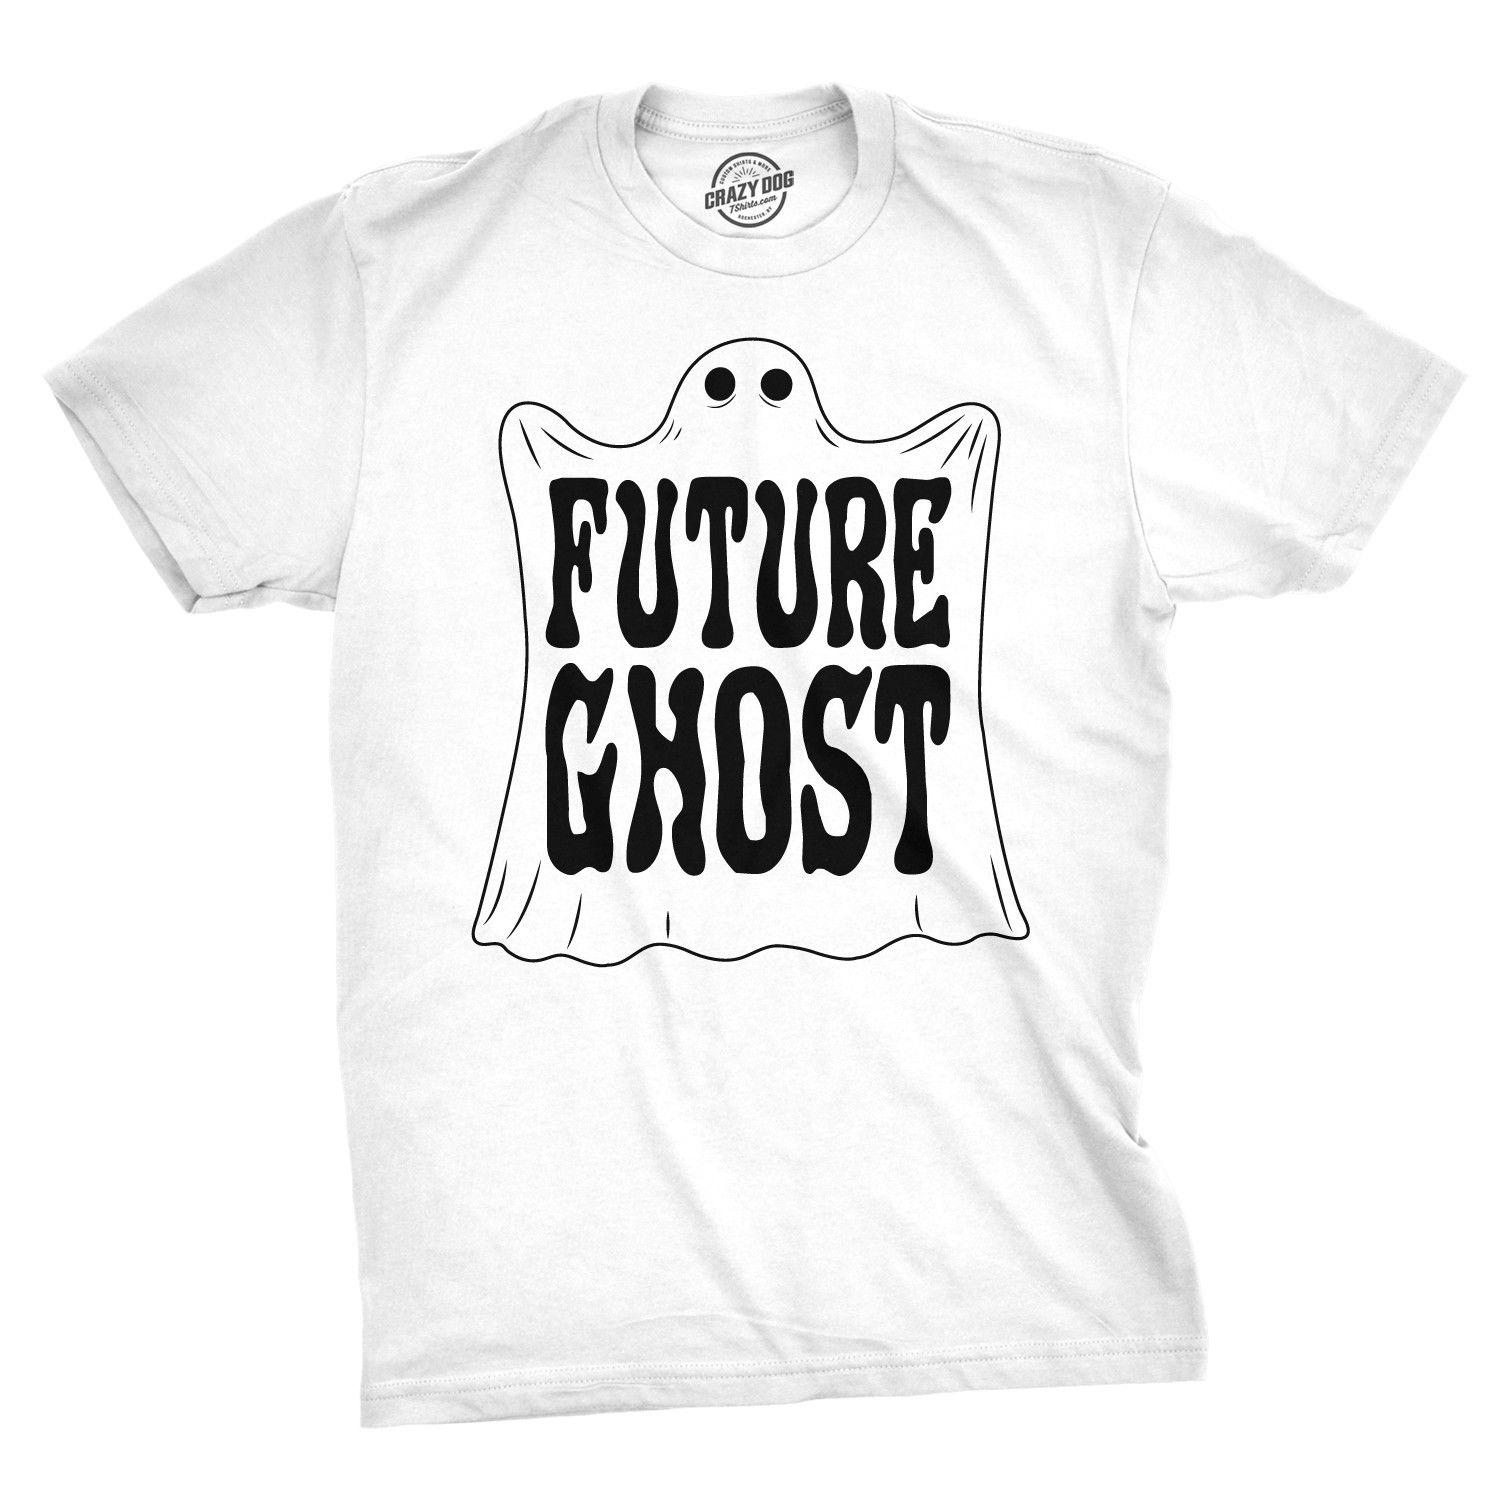 9aa813462 Mens Future Ghost Funny Tee Spooky Novelty T Shirt Cool Casual Pride T  Shirt Men Unisex New Fashion Tshirt A Team Shirts Be T Shirts From  Cls6688520, ...